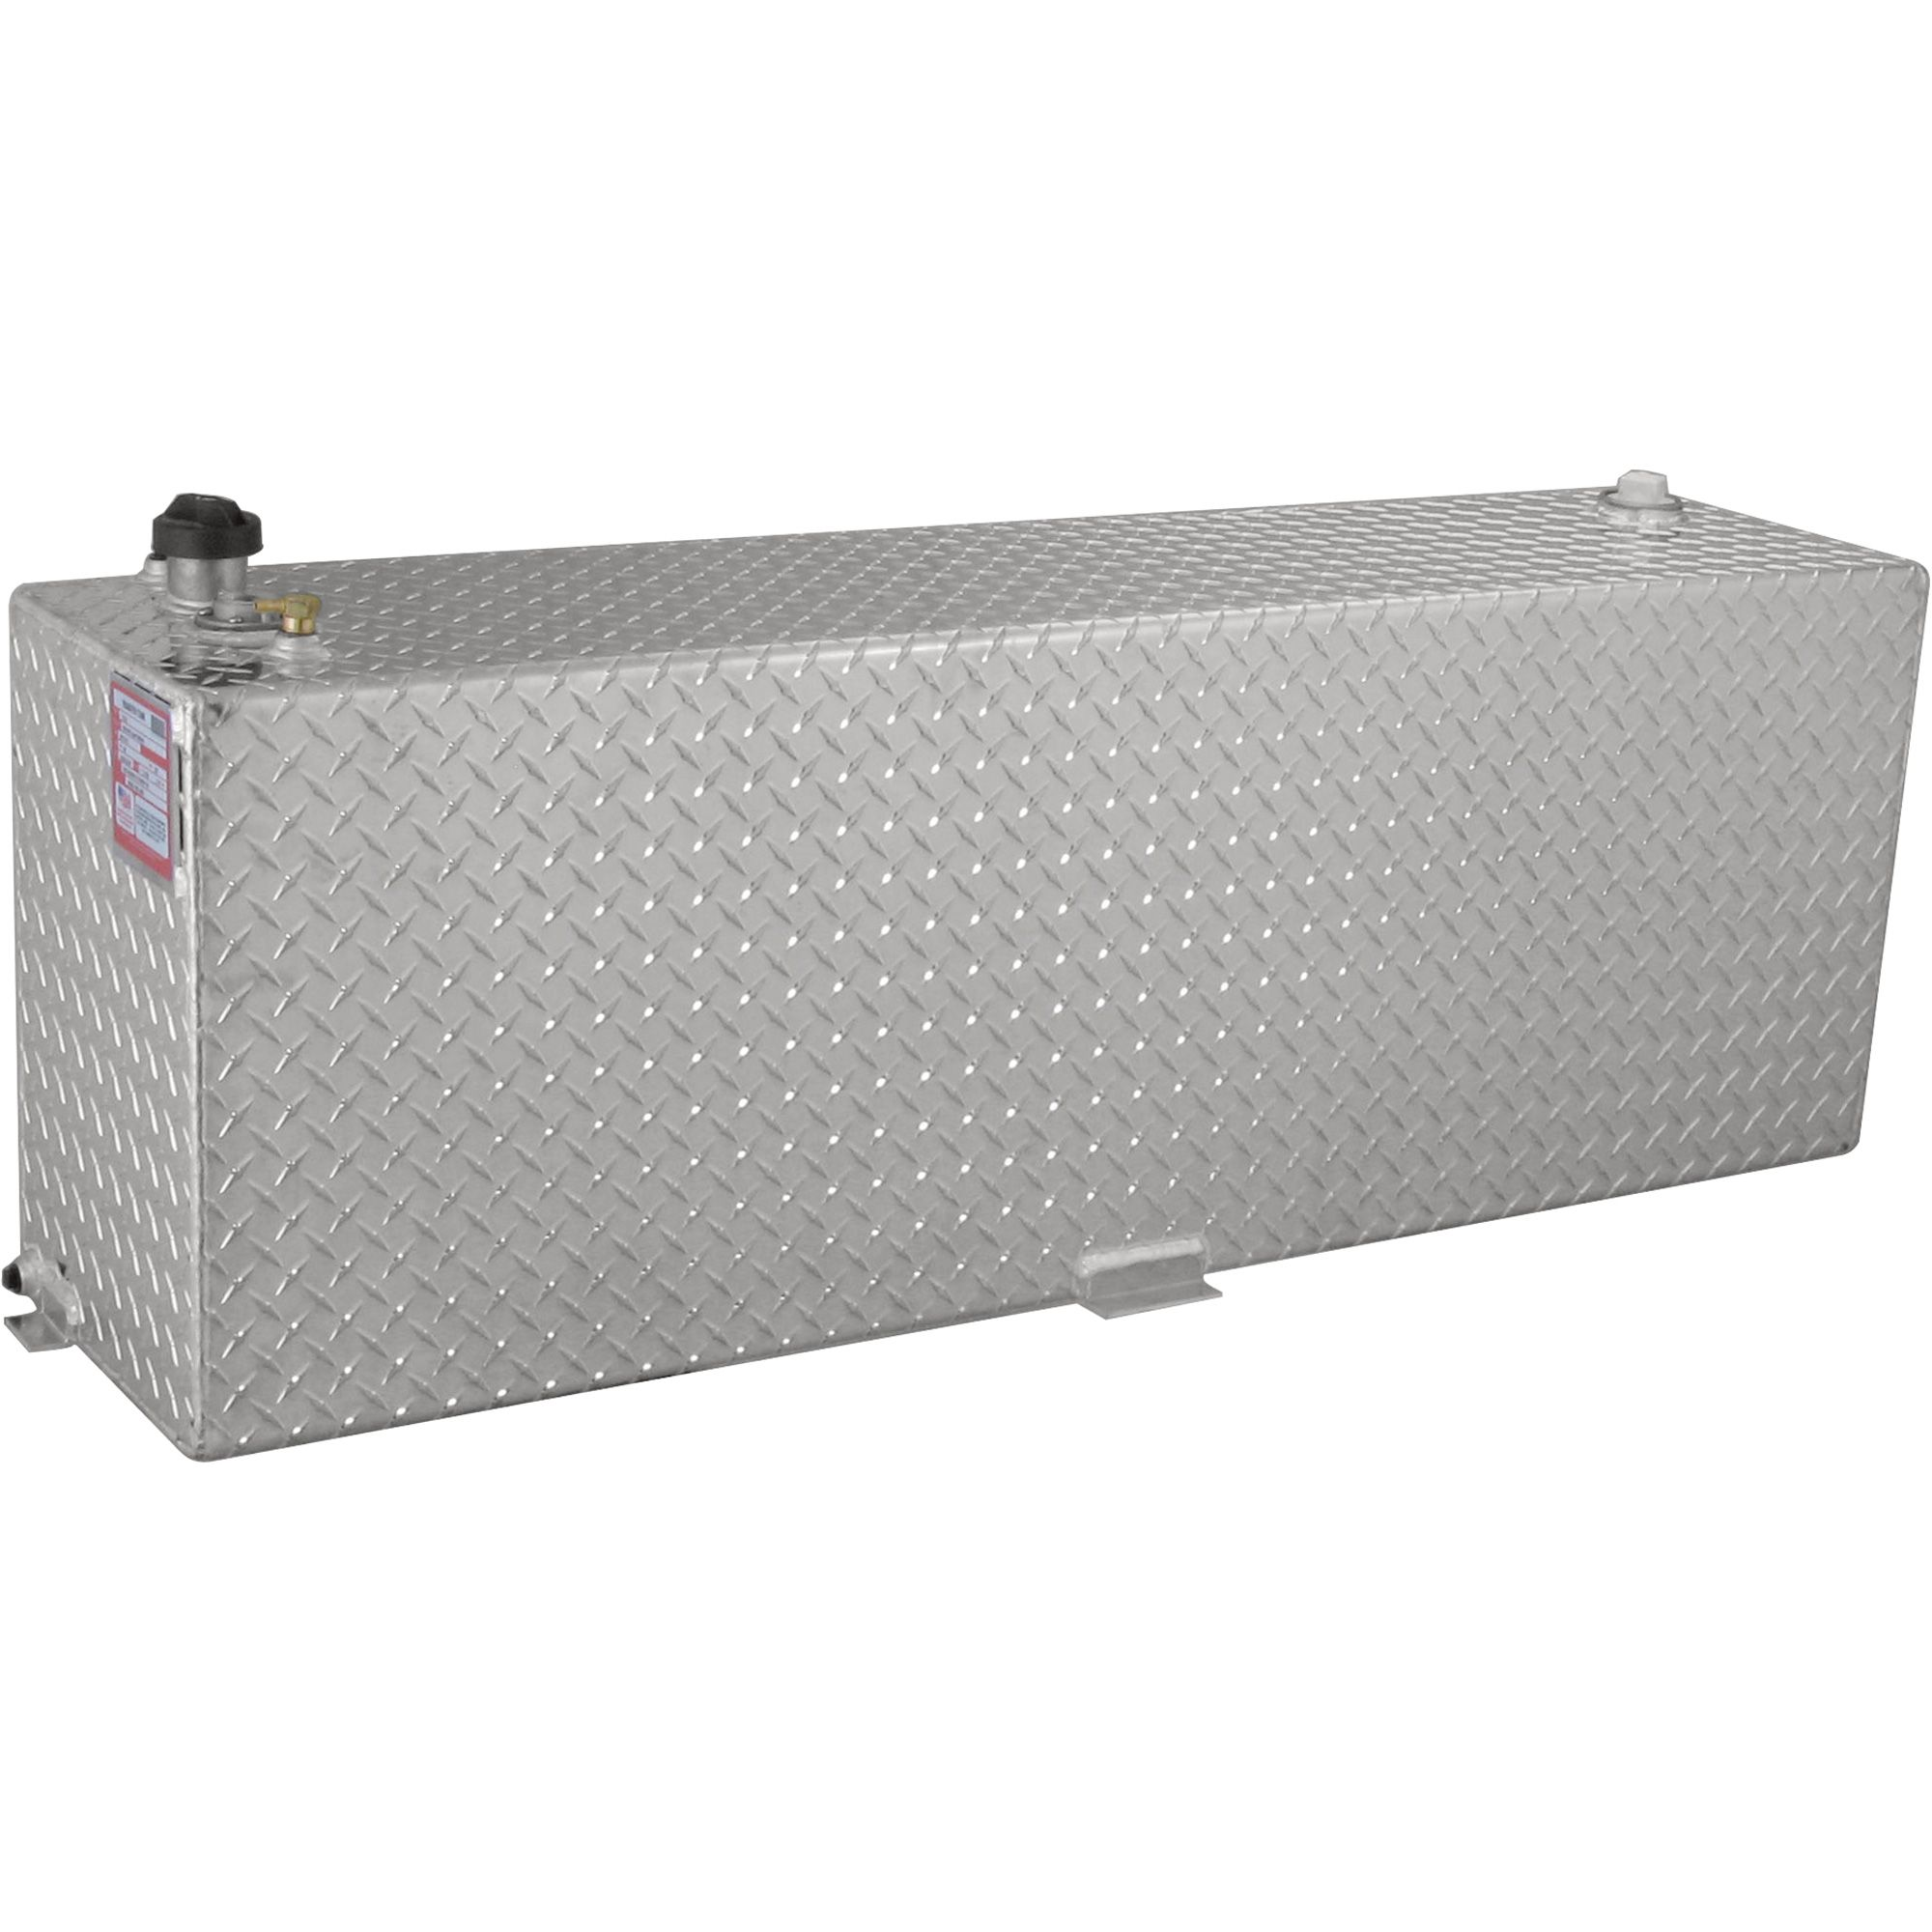 Rds Aluminum Transfer Fuel Tank 60 Gallon Rectangular Diamond Plate Model 71212 Transfer Tanks Diamond Plate Fuel